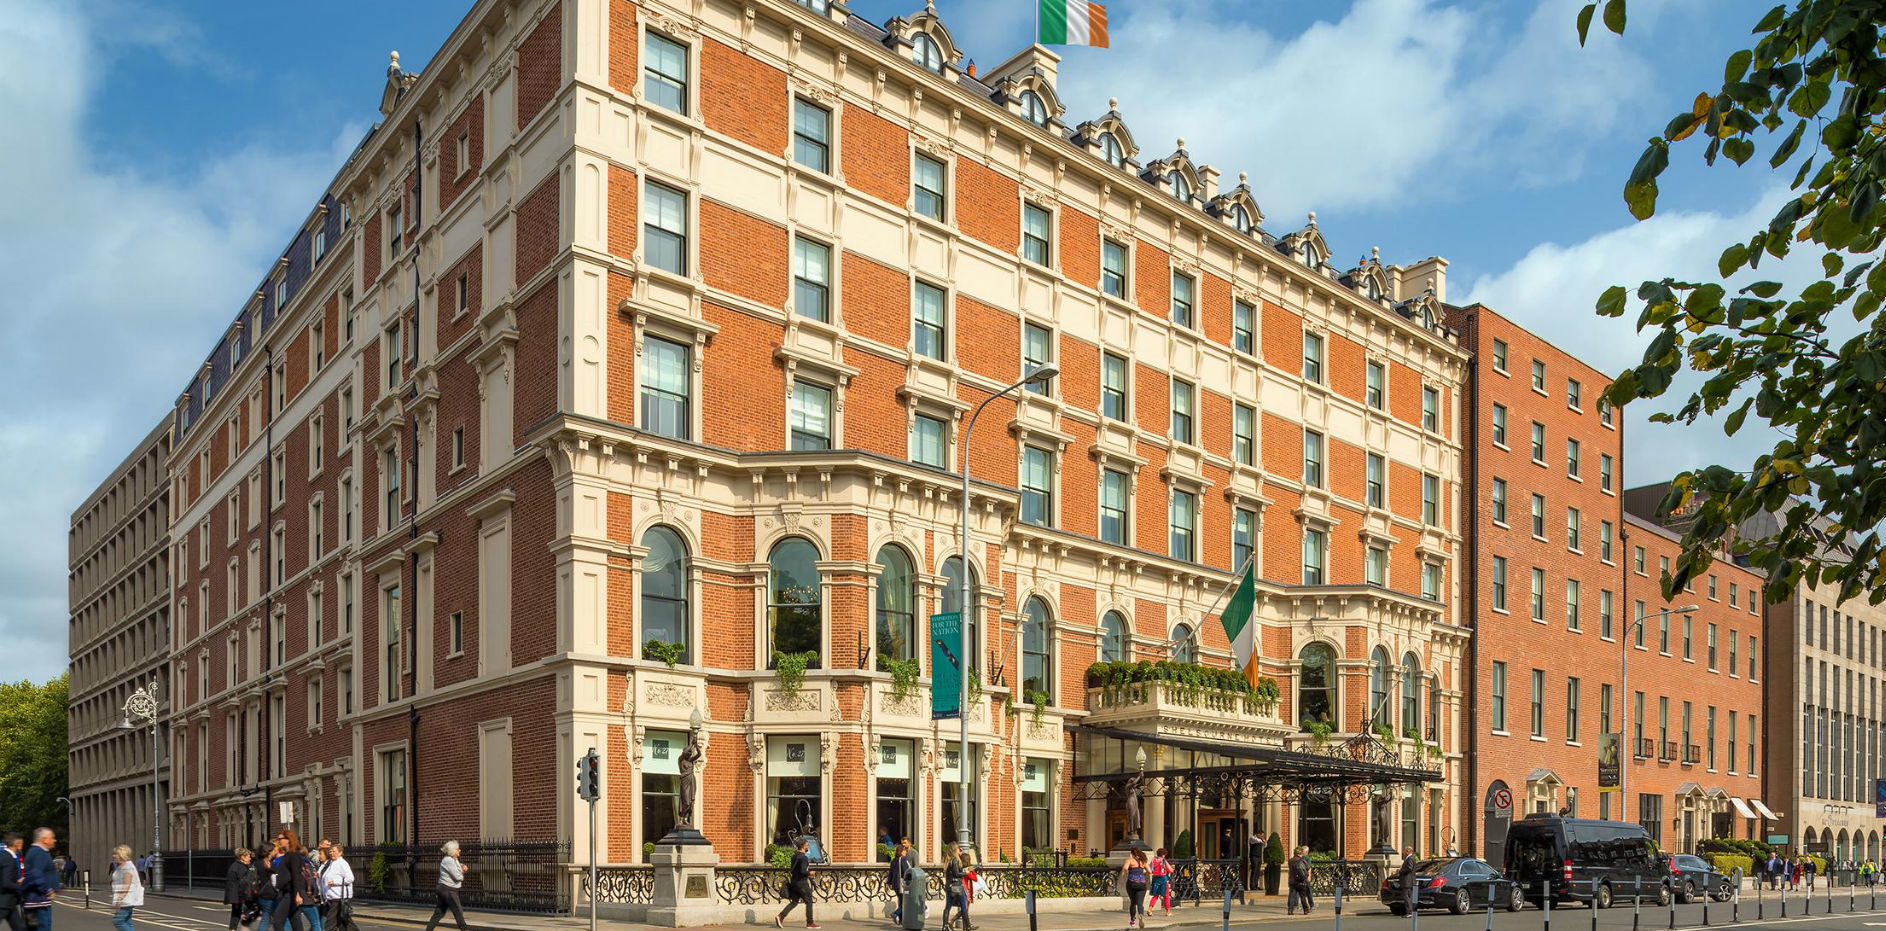 Hotel in Ireland adds feature that helps guests track down family roots